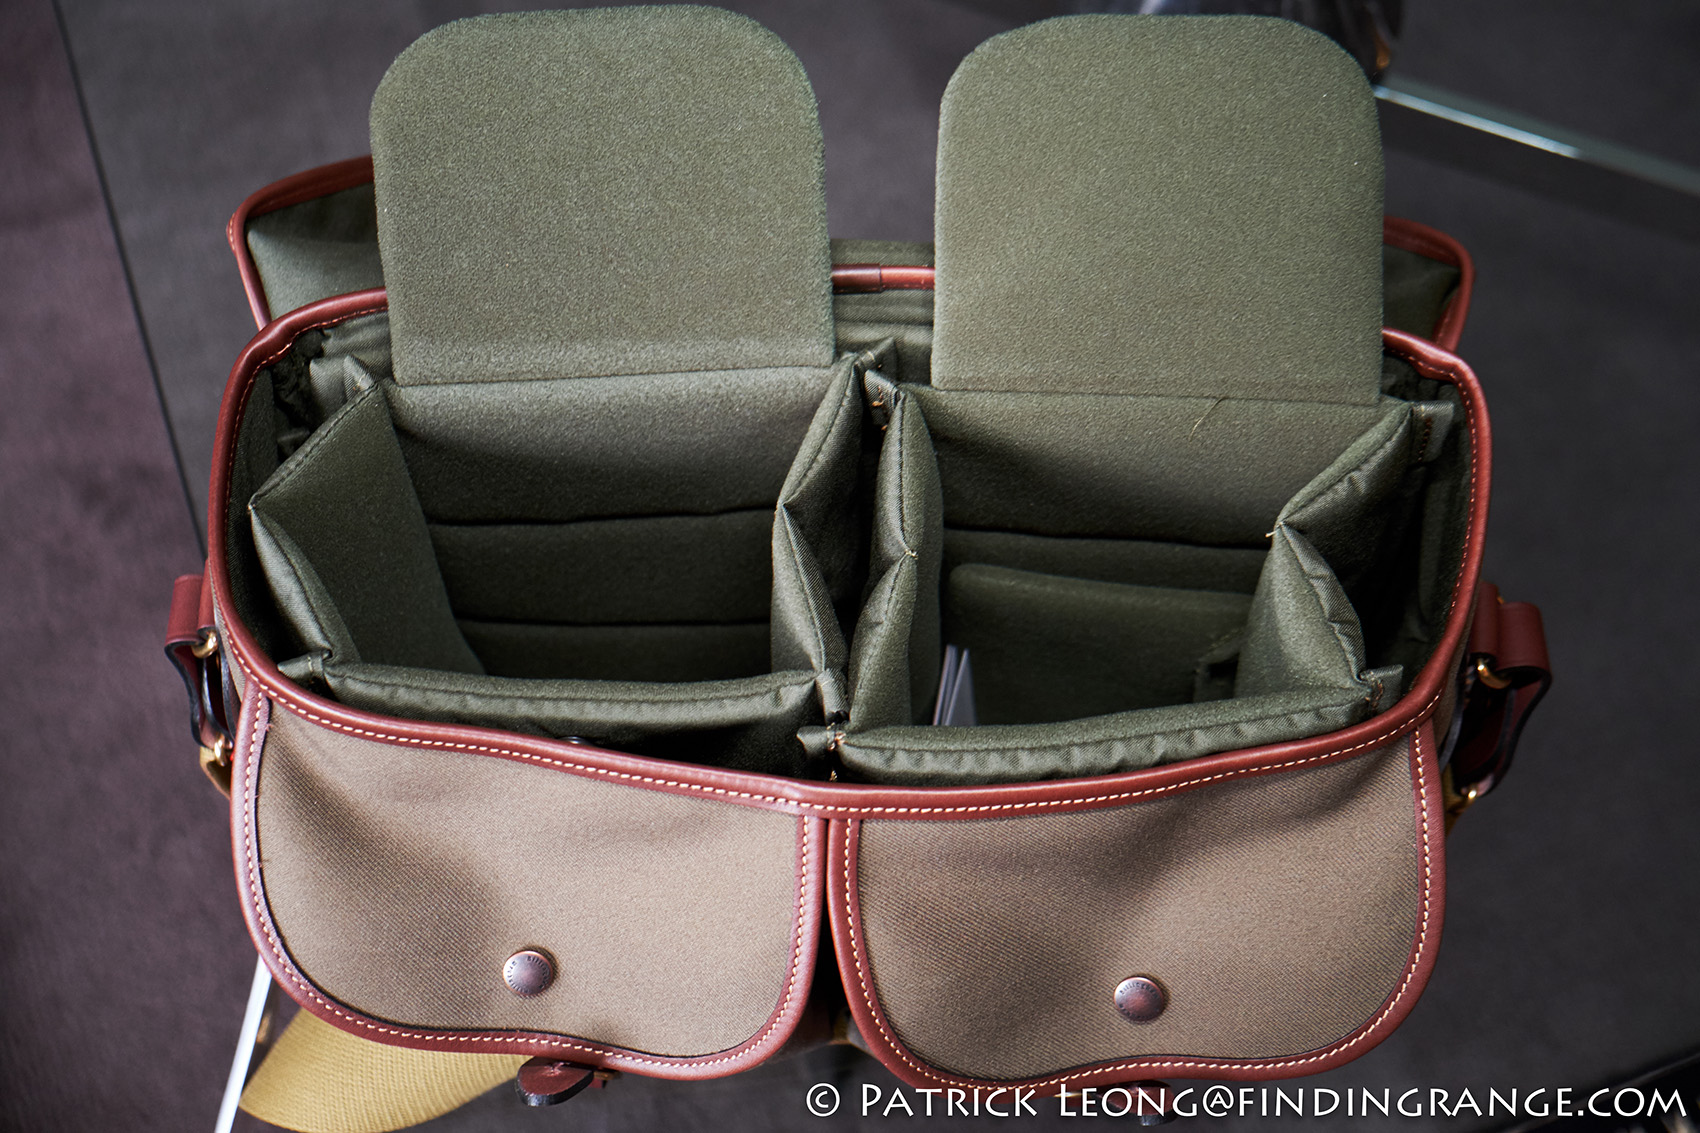 Billingham Hadley One Camera Bag First Look Black Canvas Tan Leather Impressions Review 8